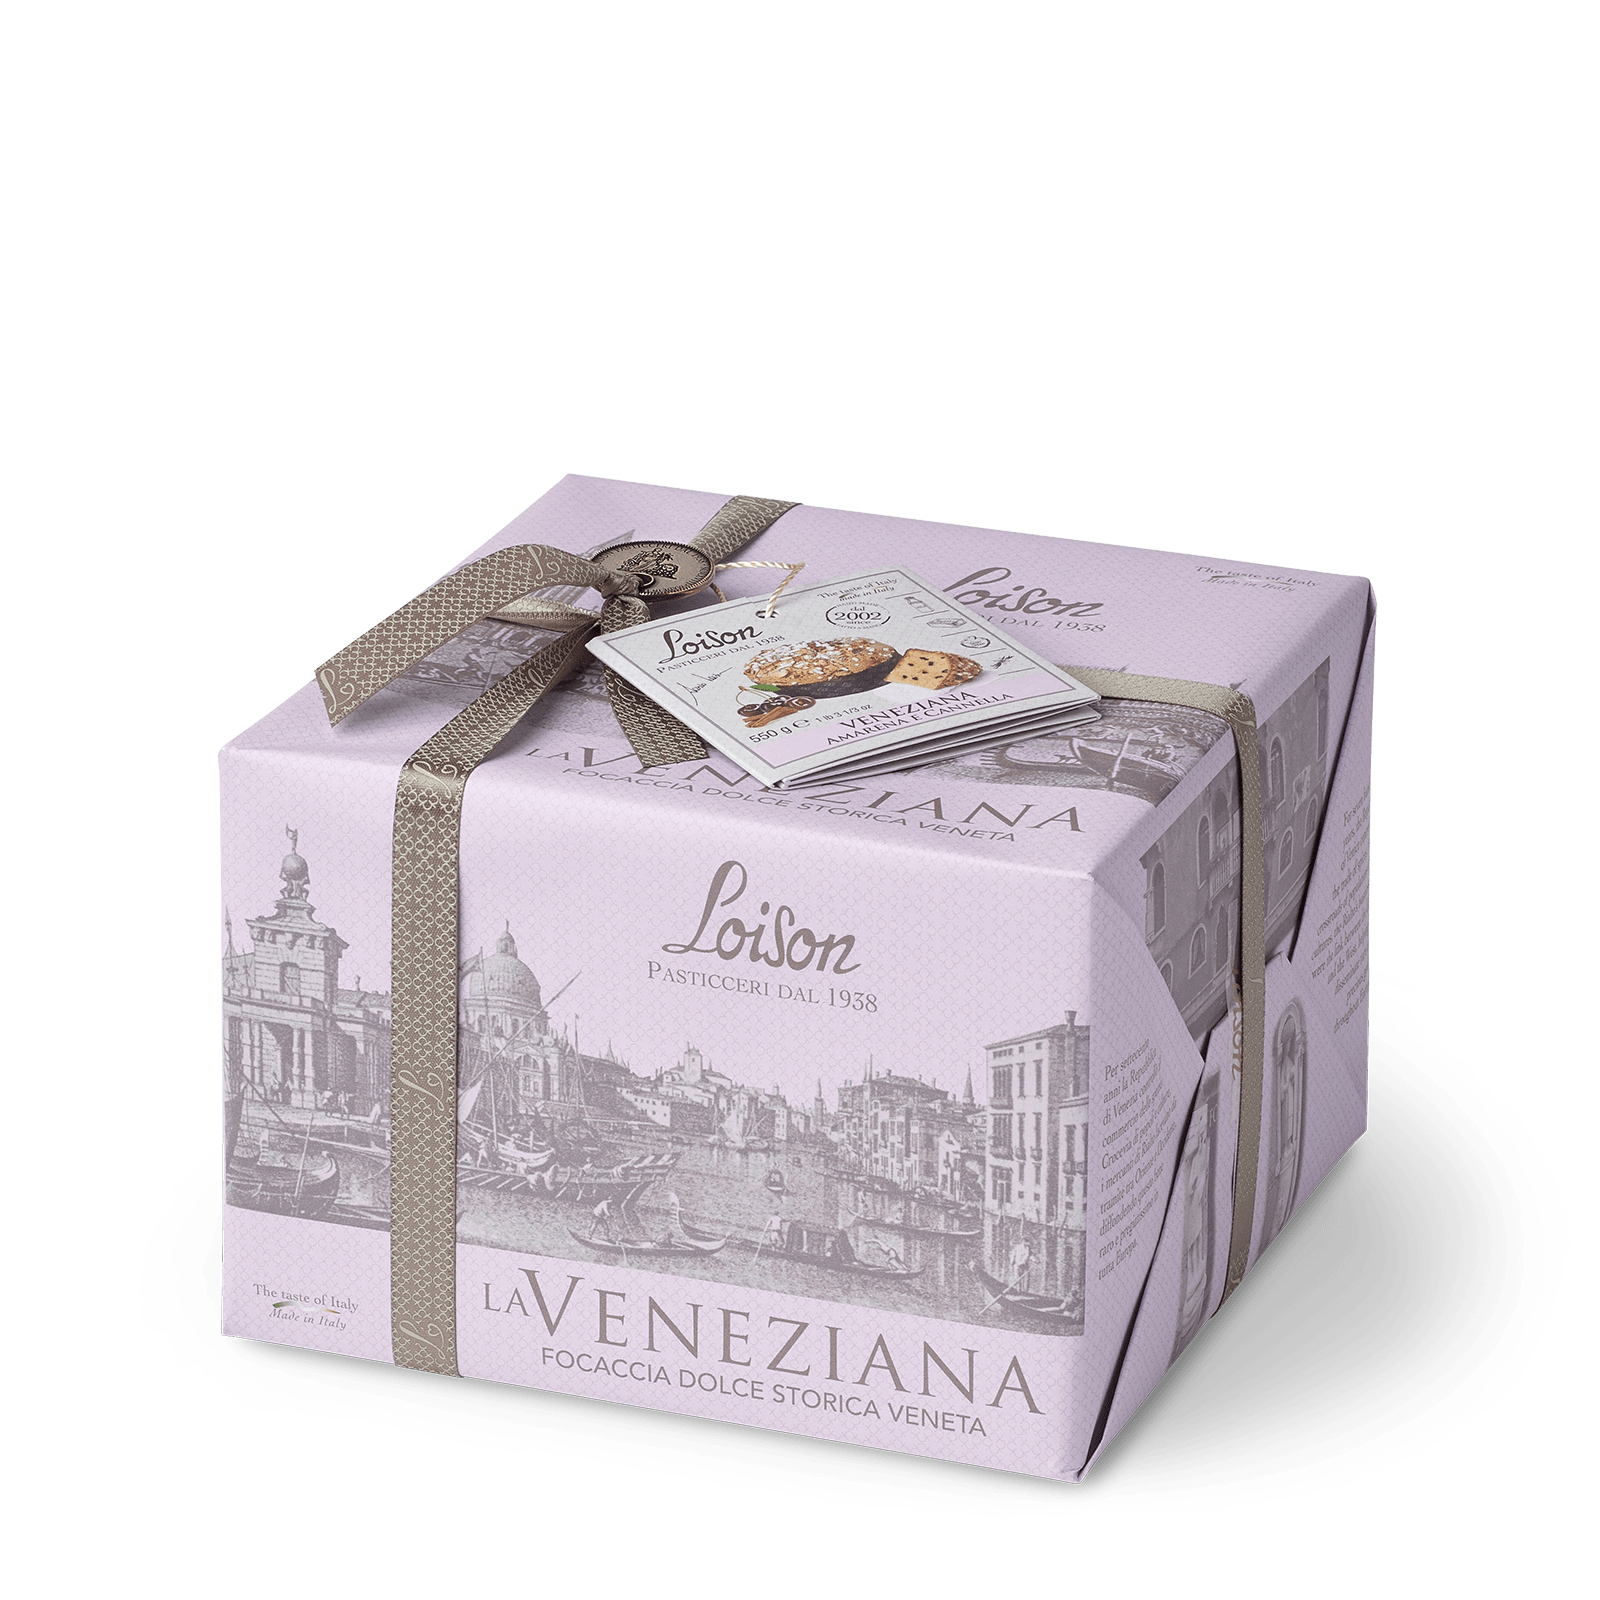 Cherries and cinnamon Veneziana Traditional Cake of Venice Loison